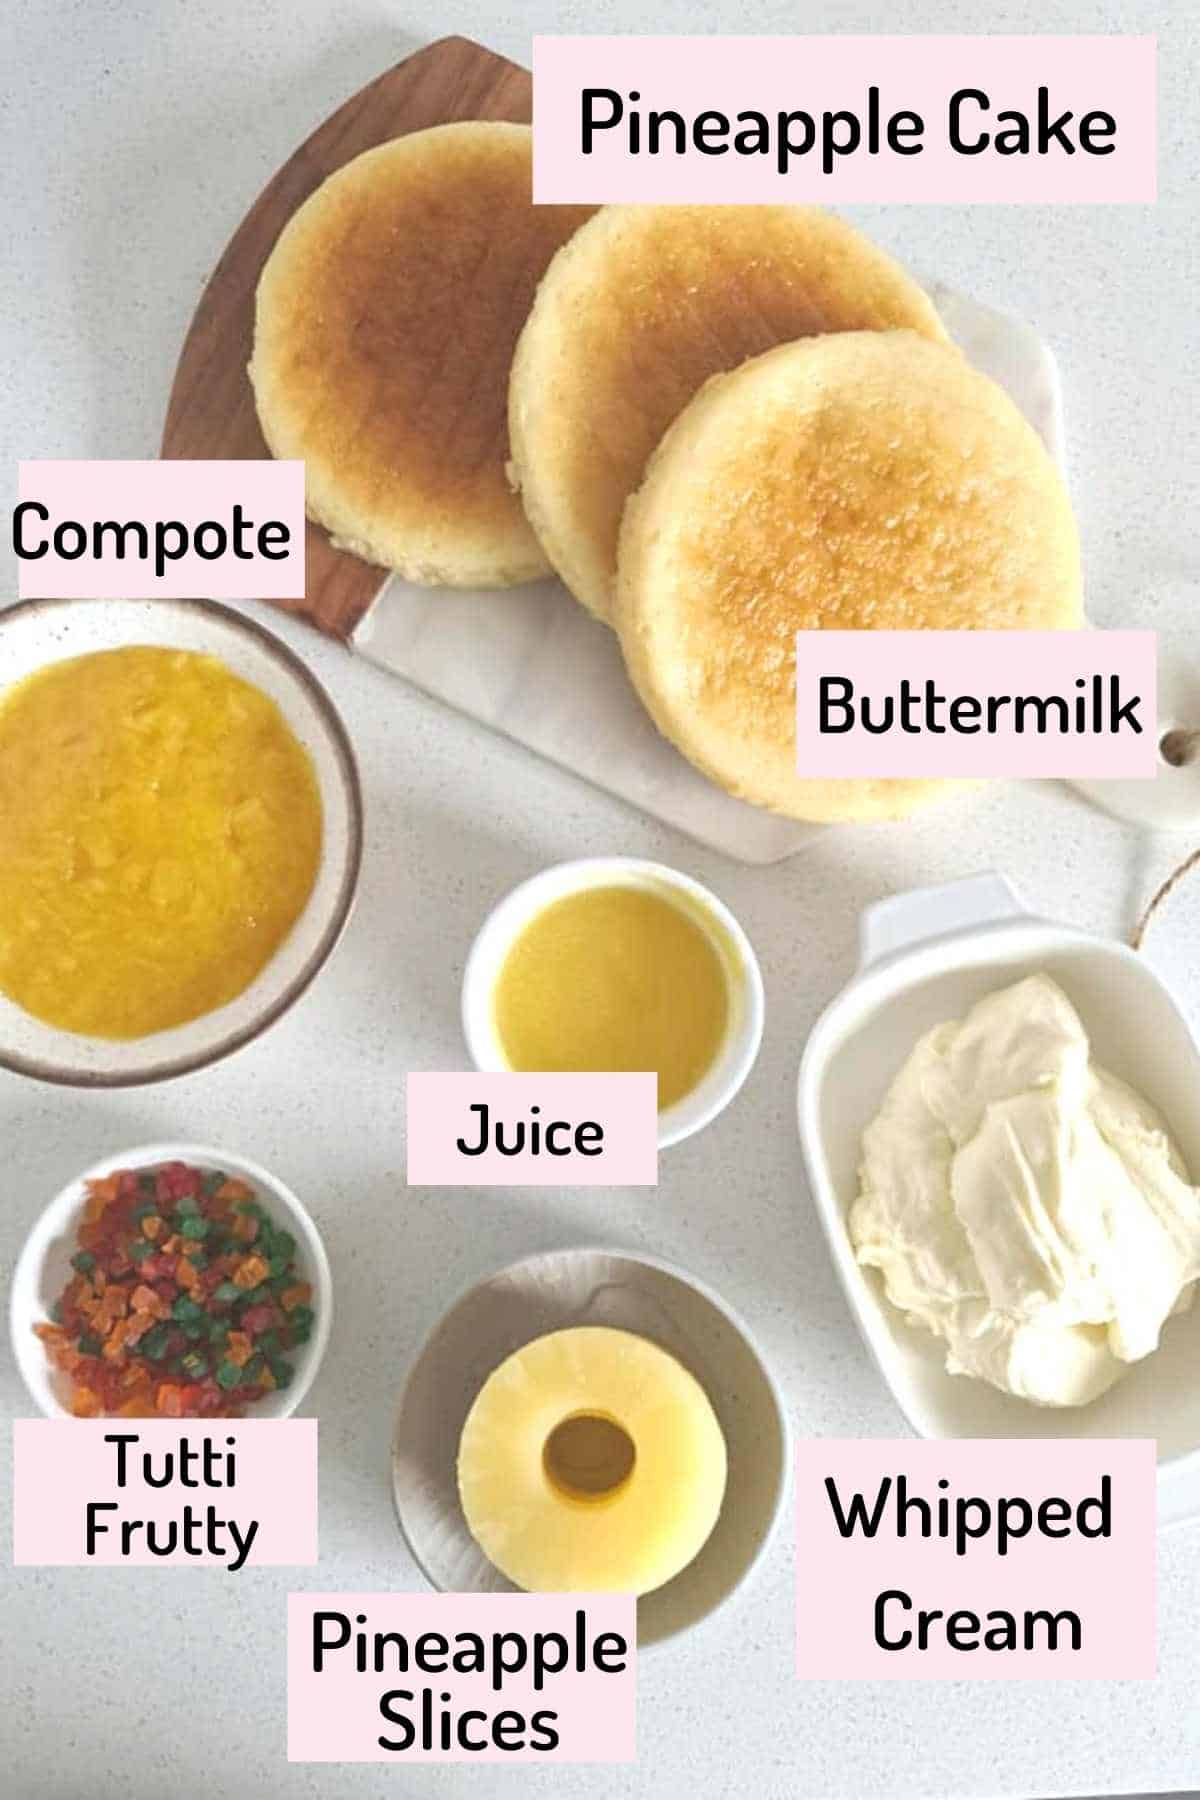 ingredients needed to make pineapple cake